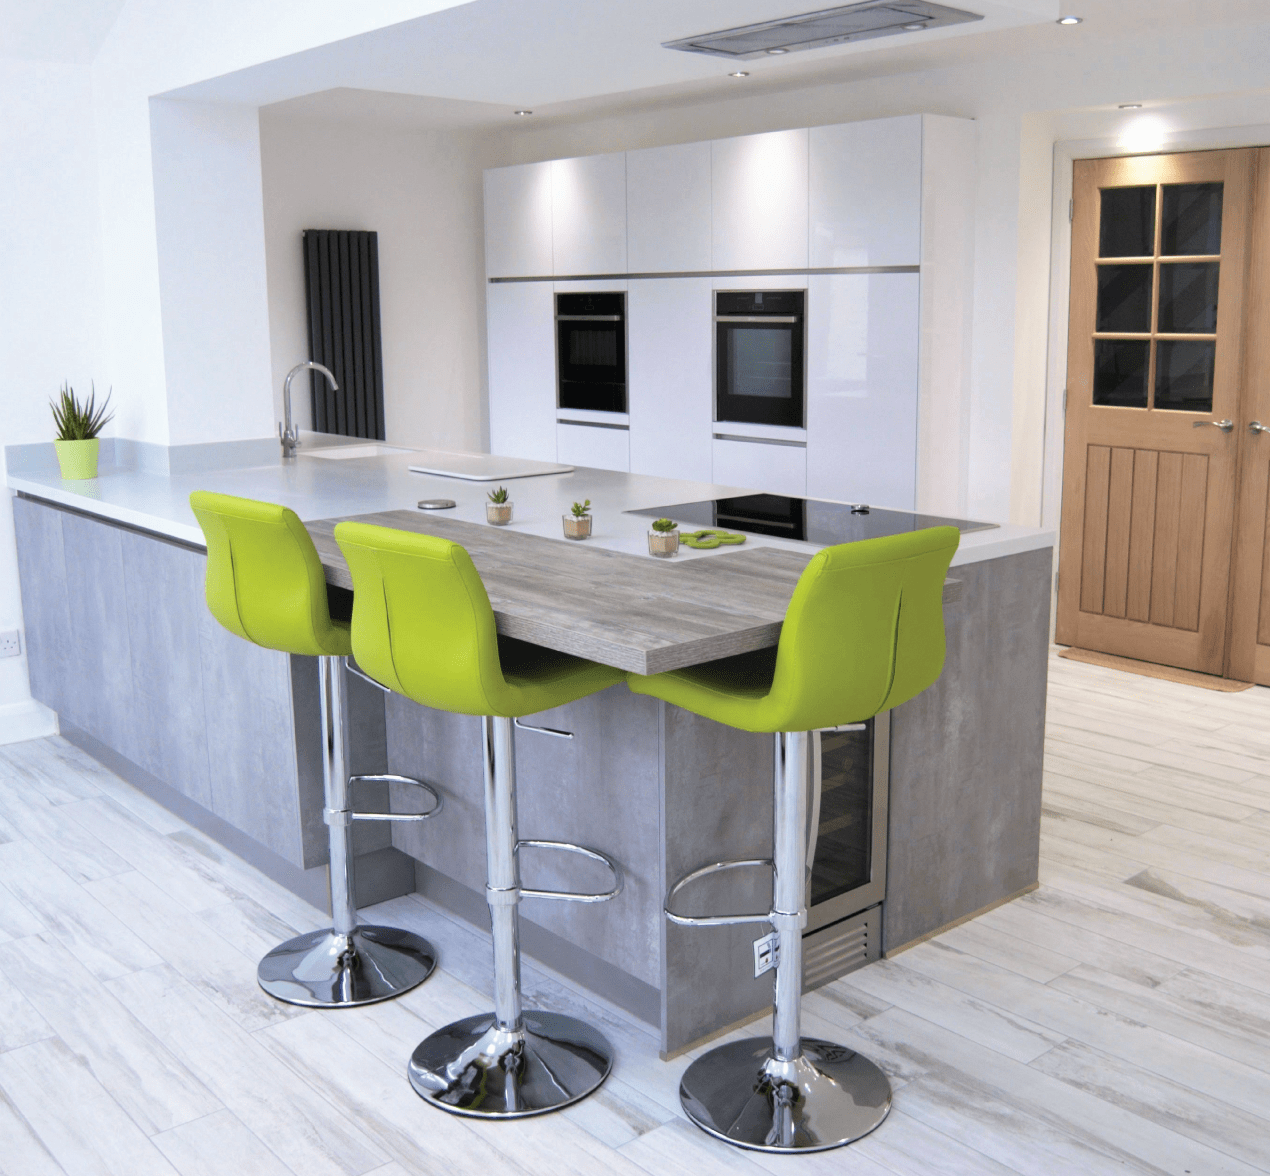 kitchen design centre colne kitchen design centre colne kitchen showroom m65 burnley 615